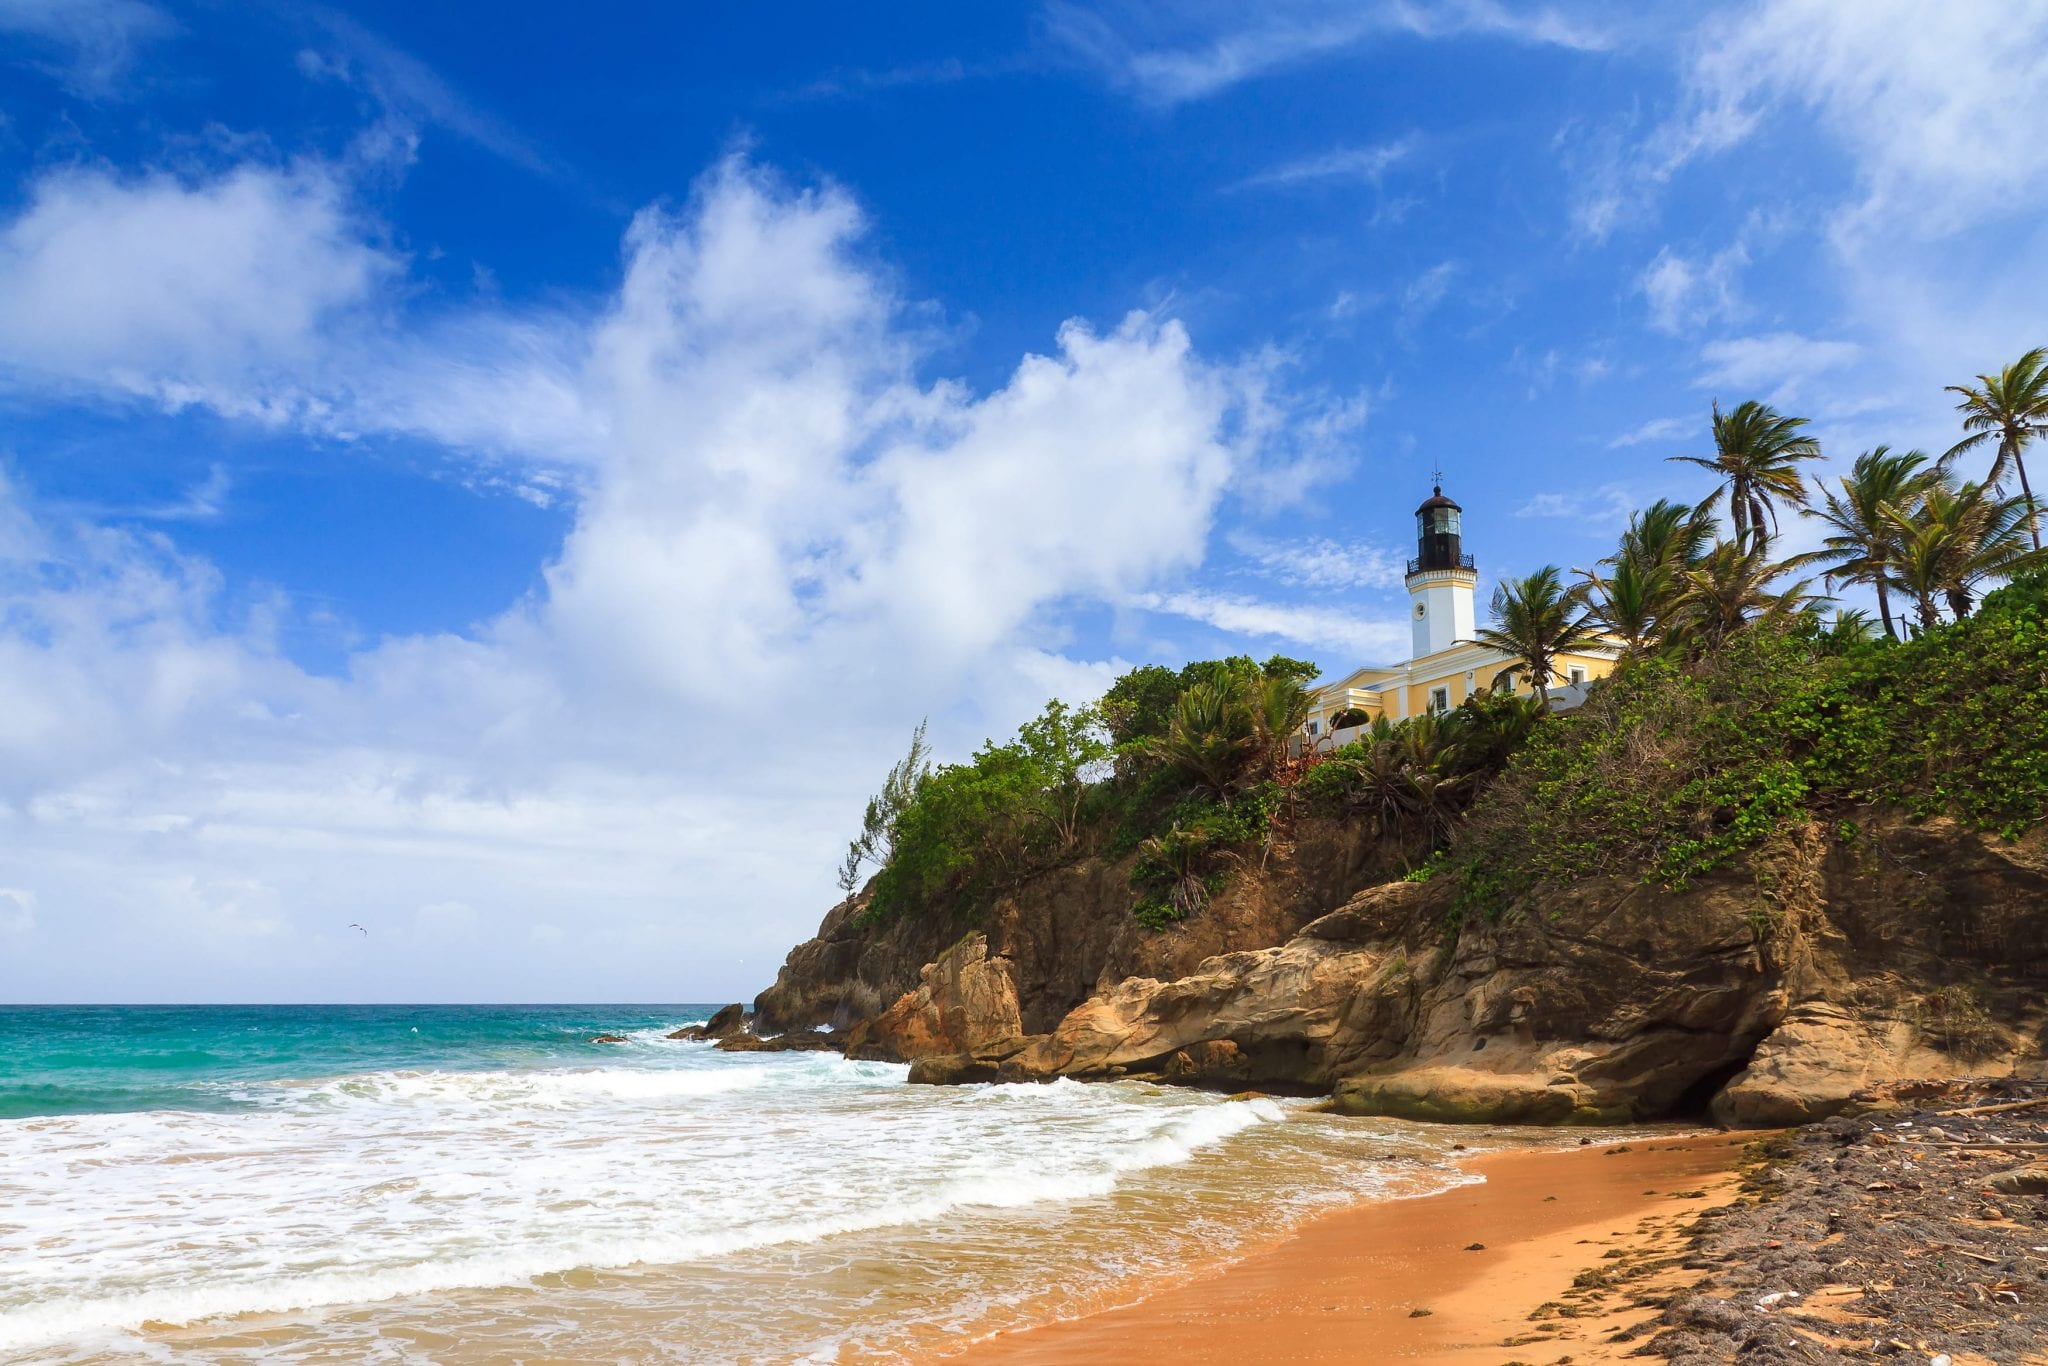 Puerto Rico Wedding Package.Puerto Rico Destination Weddings All Inclusive Packages